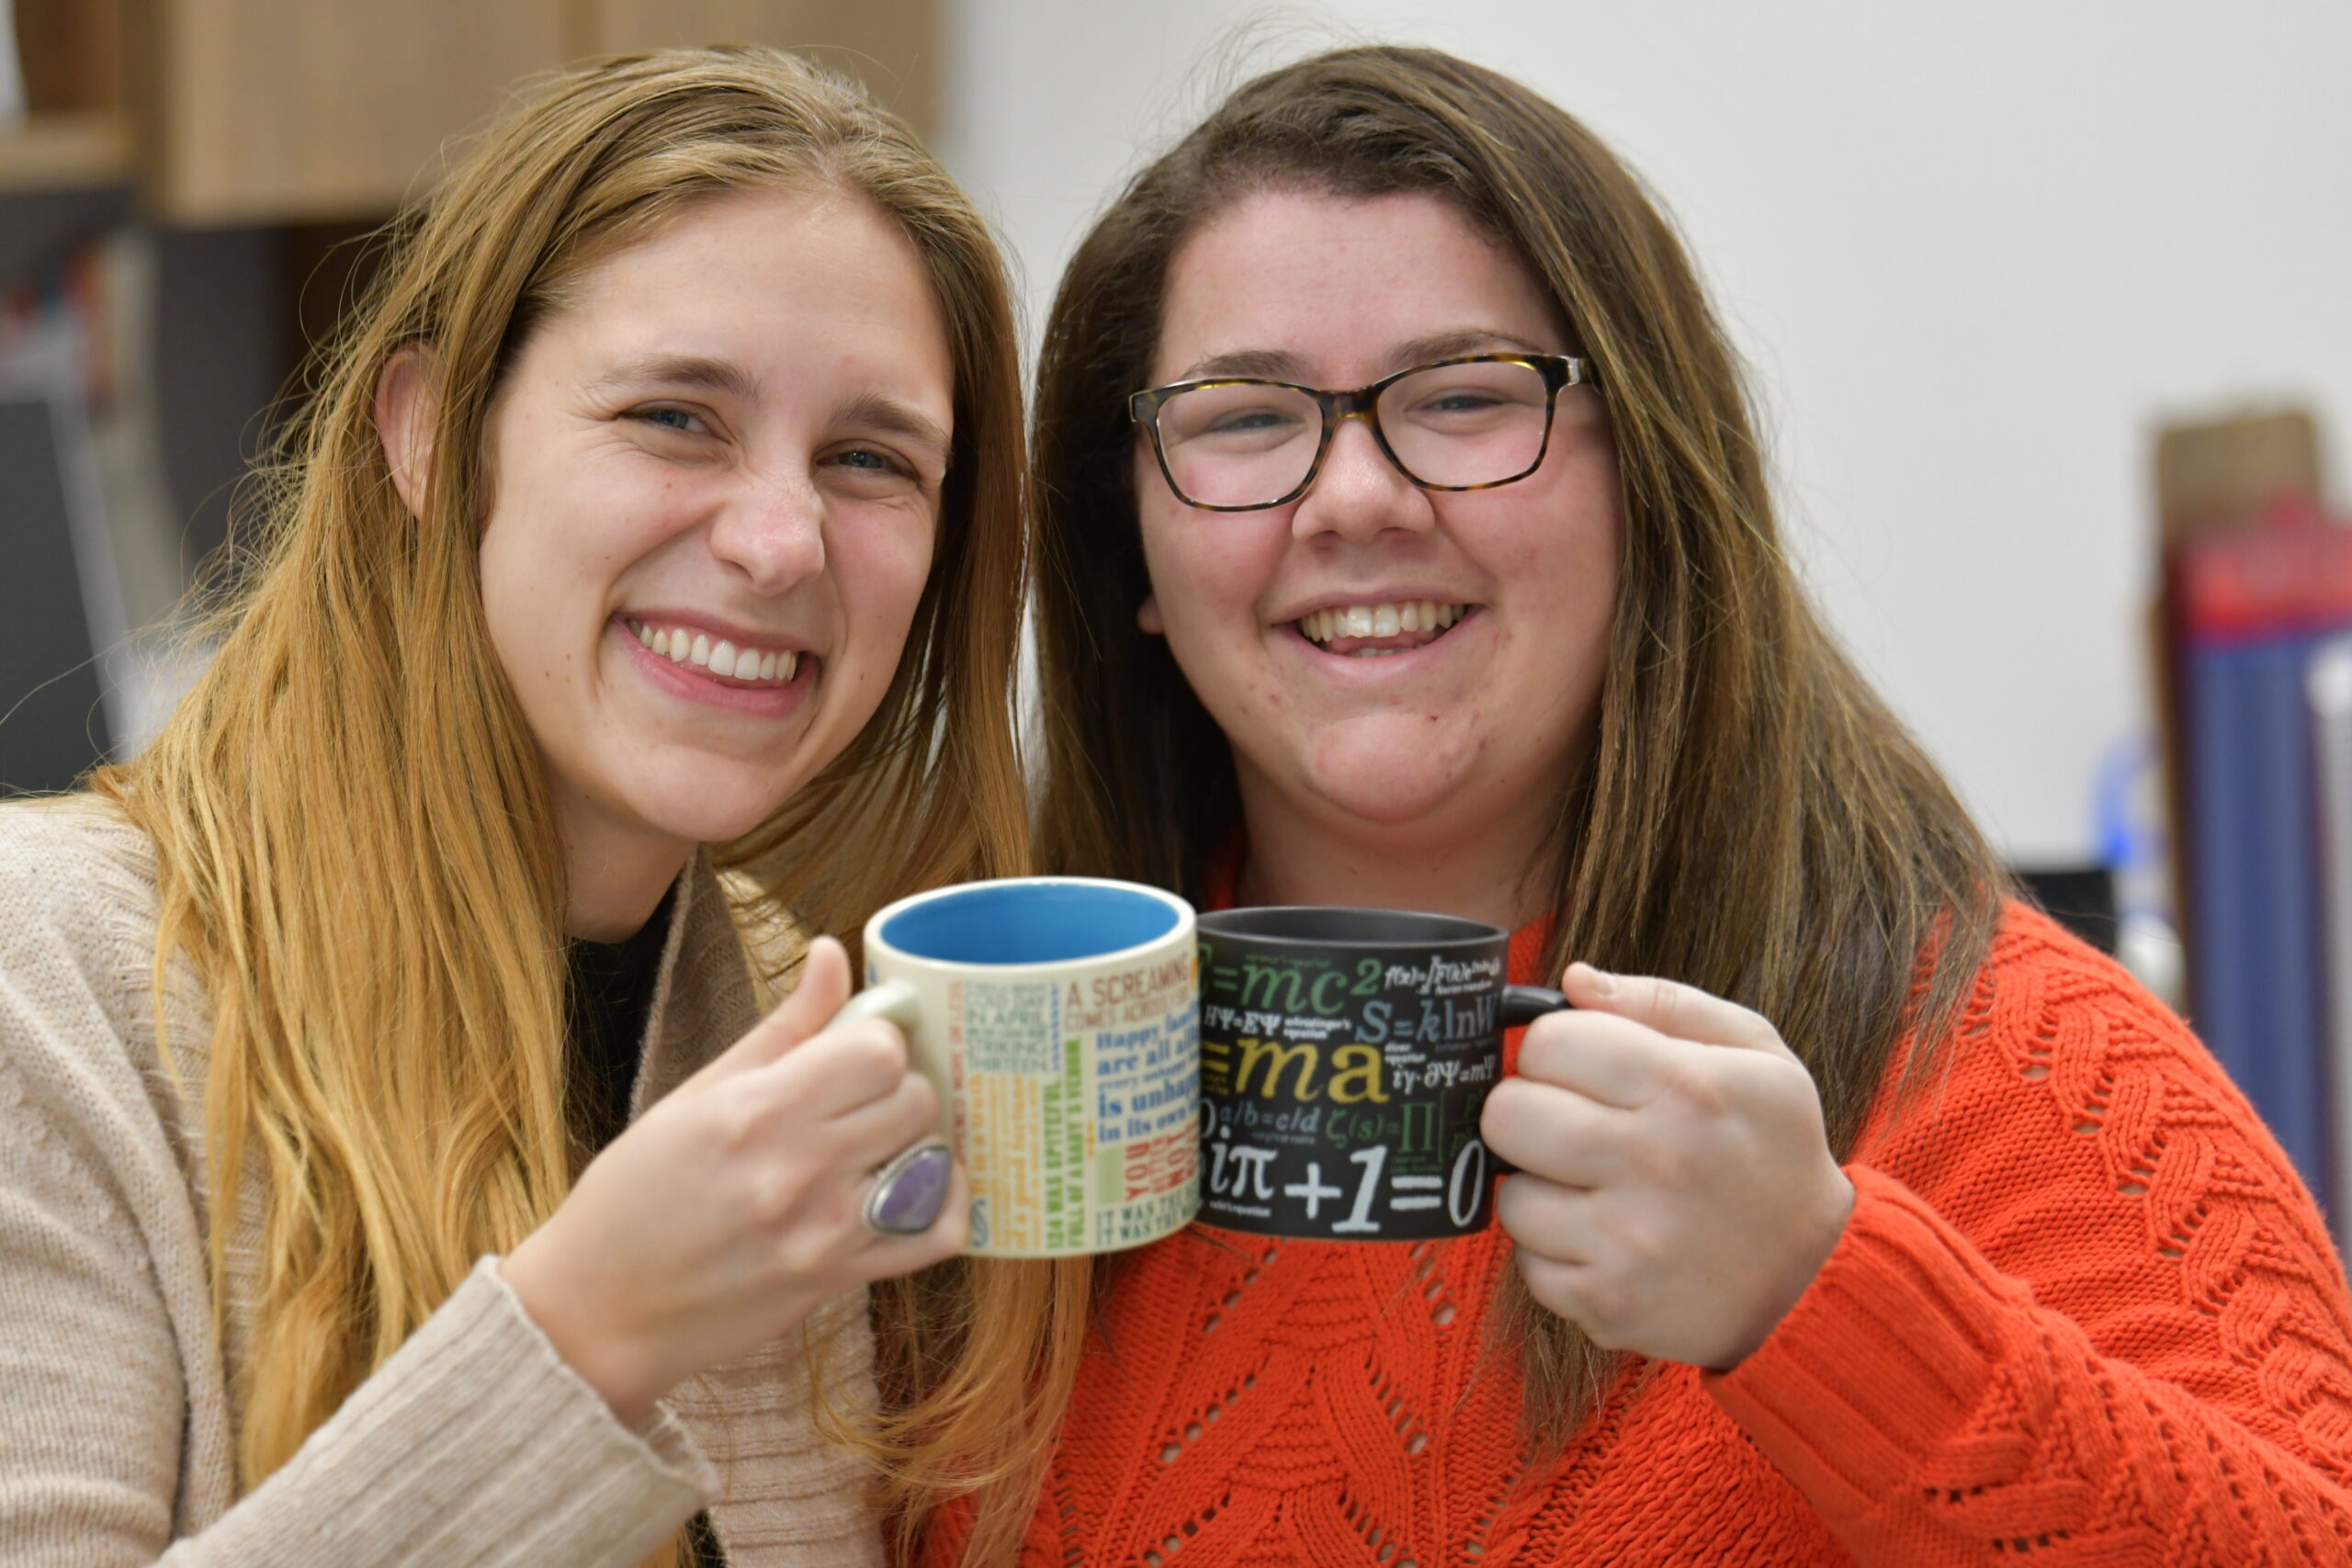 Two teachers hold mugs and smile at the camera